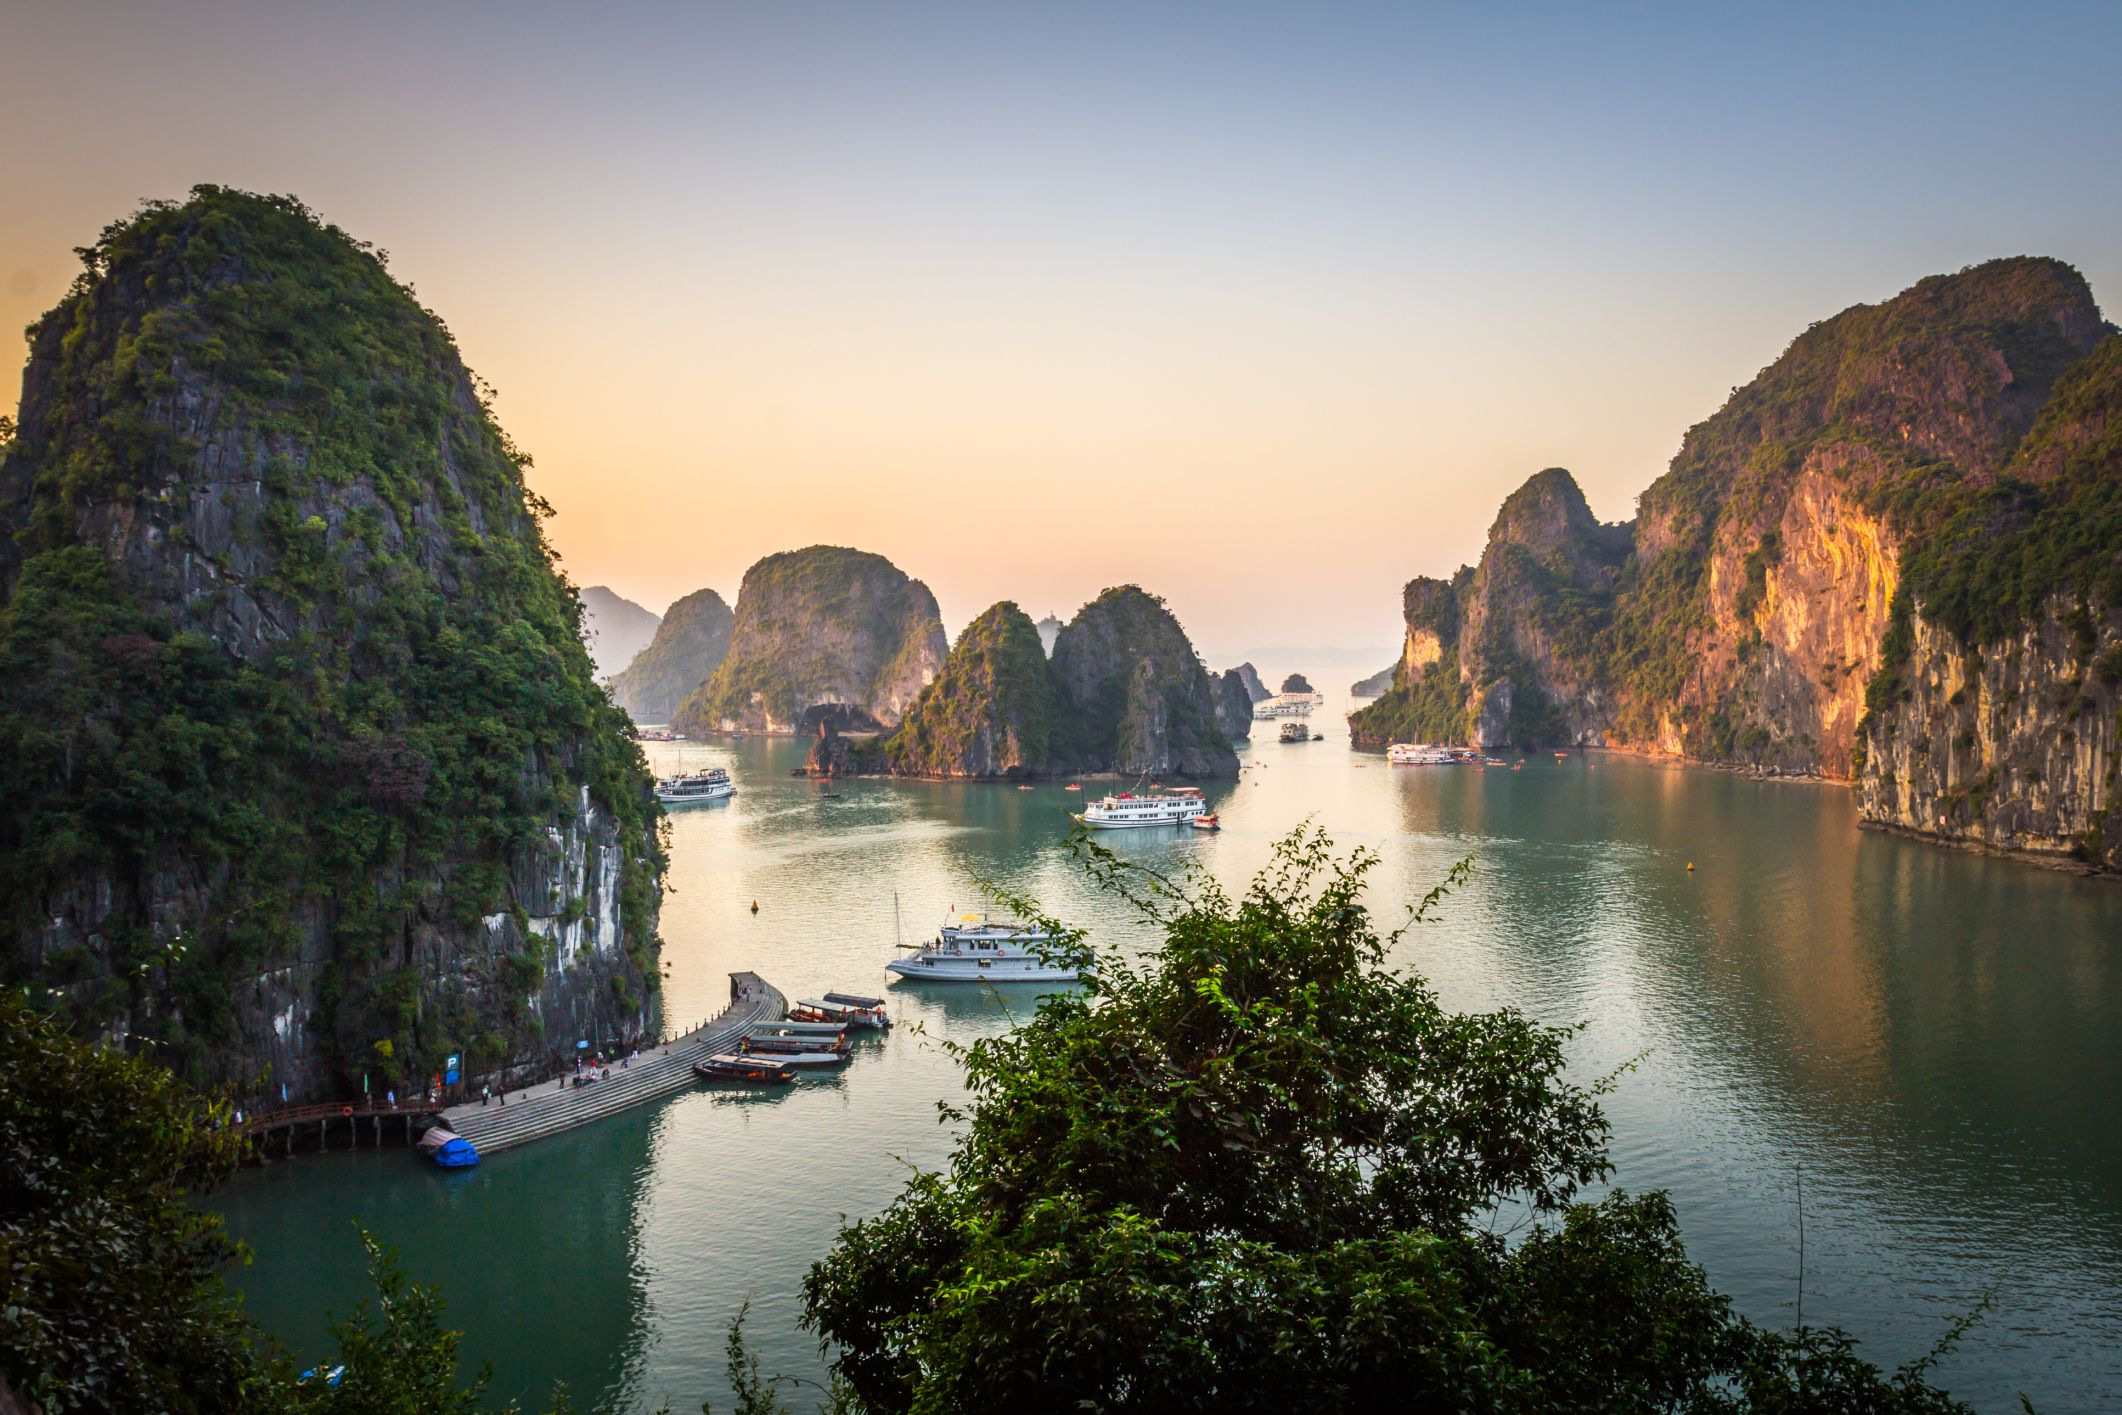 How to Book a Package Tour to Vietnam's Ha Long Bay